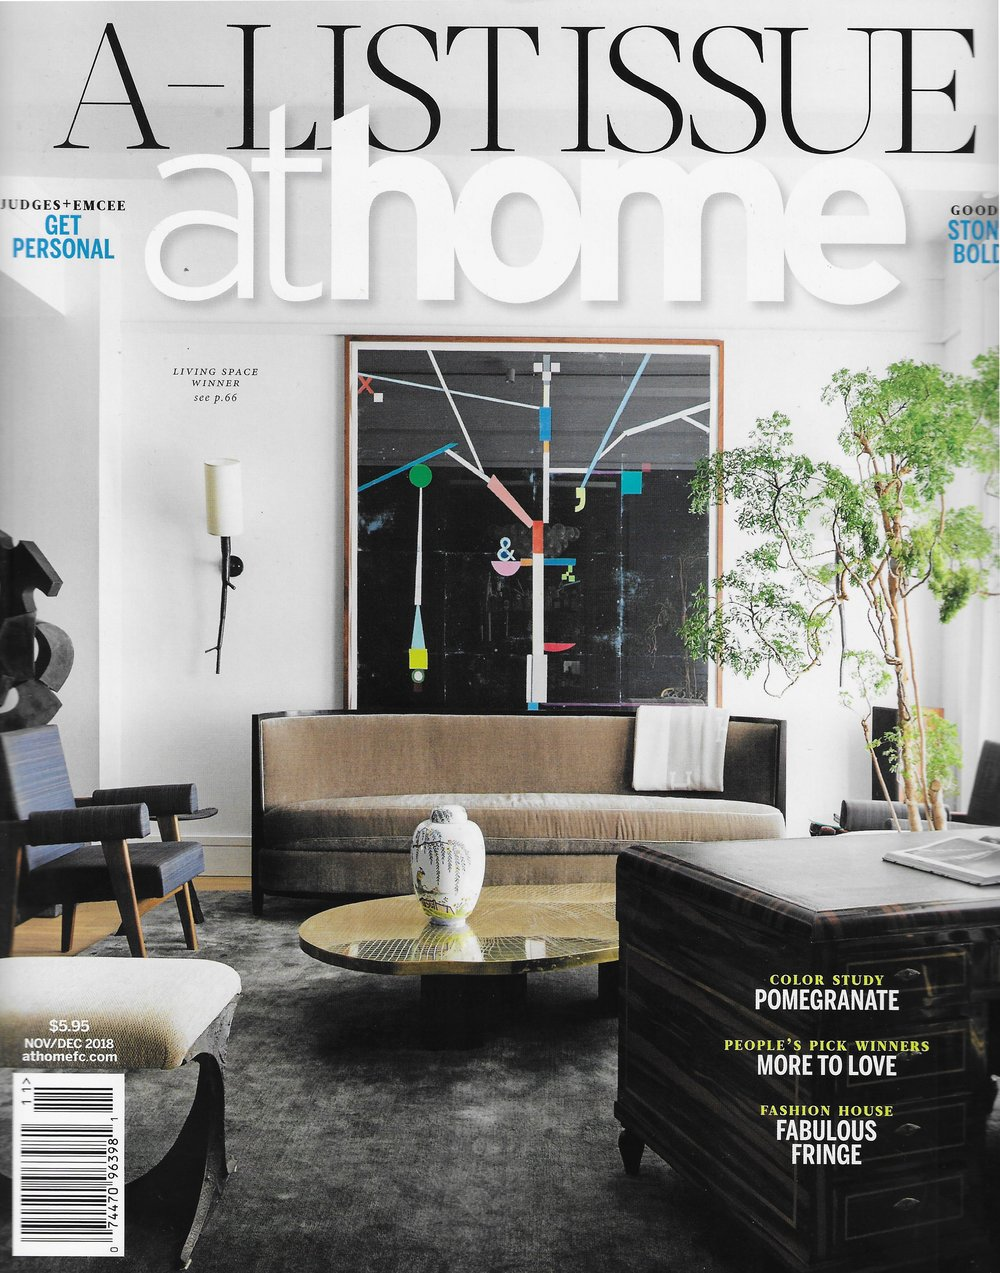 AT HOME MAGAZINE - Nov/Dec 2018